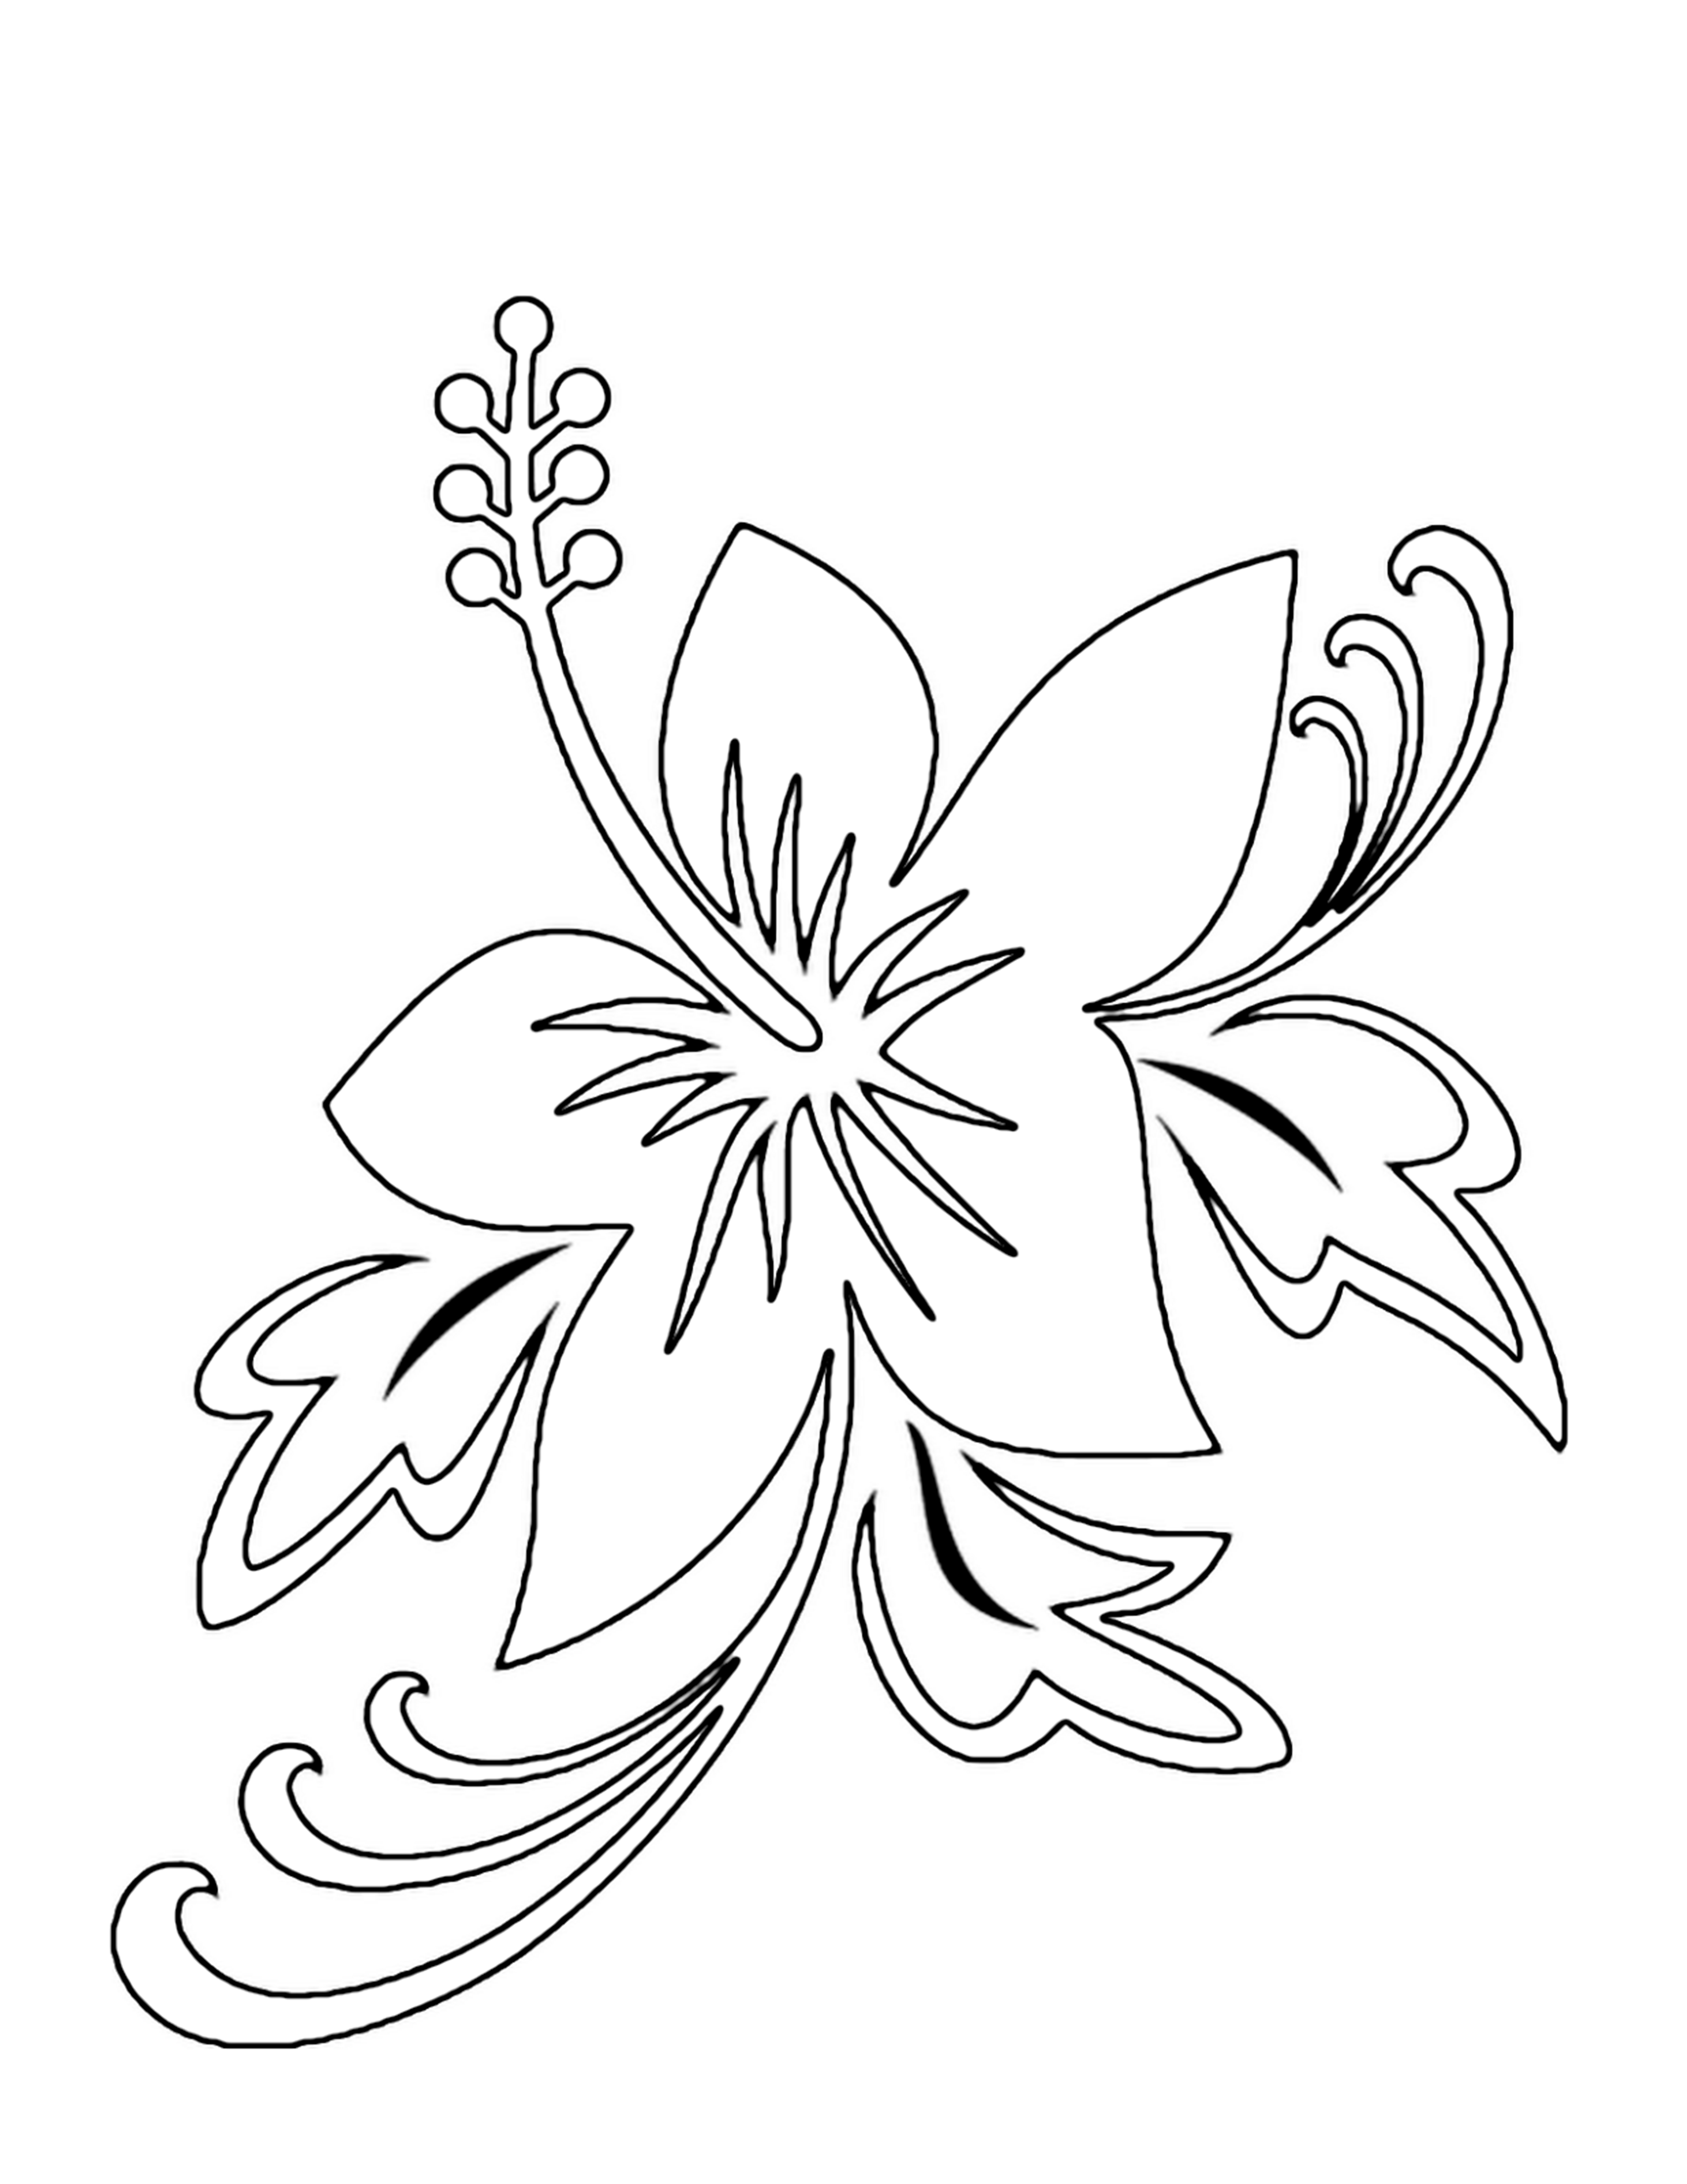 free printable flowers to color free printable flower coloring pages for kids best flowers free printable color to